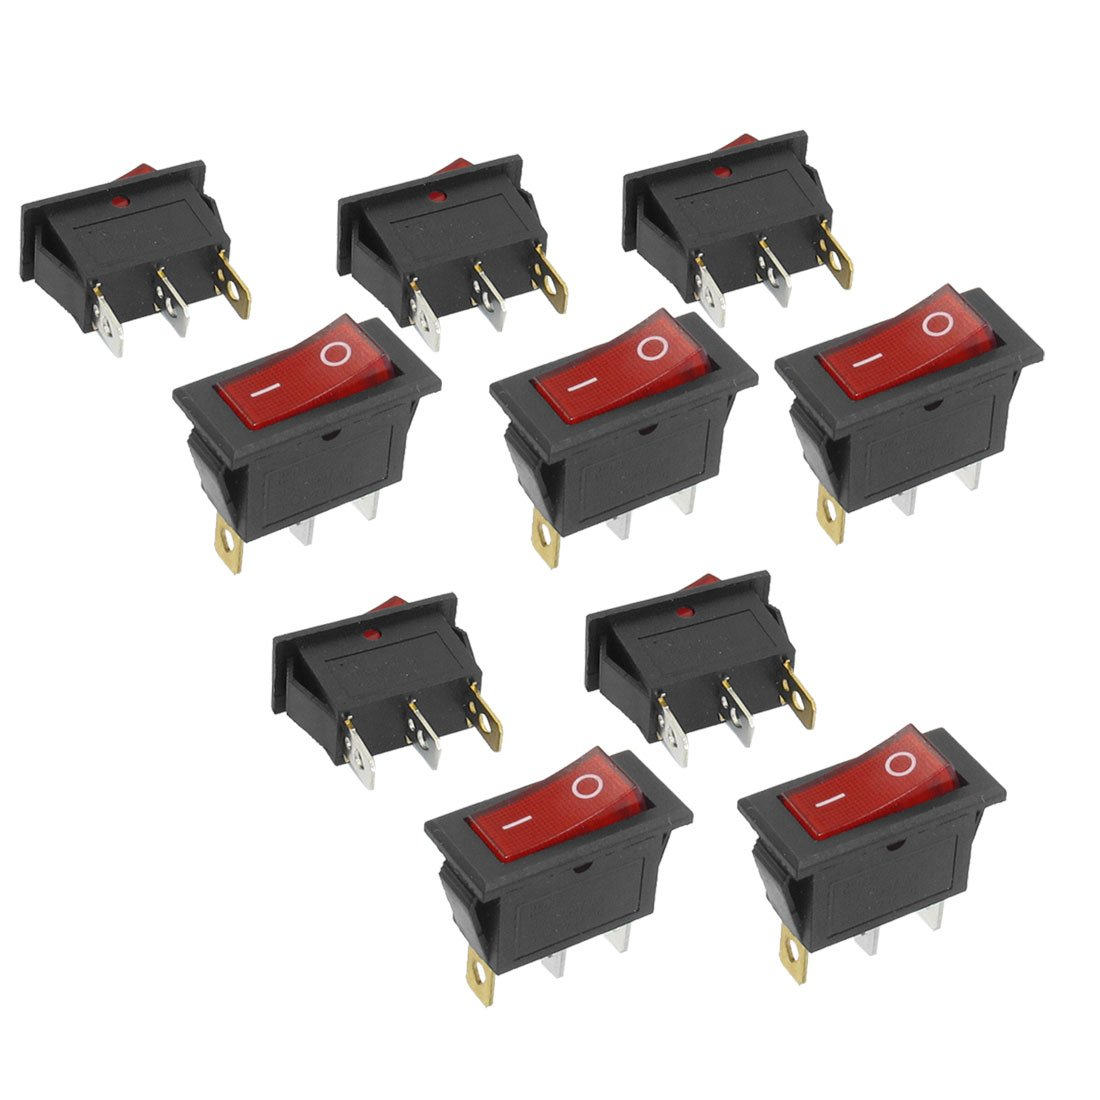 Promotion! 10Pcs 3 Pin SPST Neon Light On/Off Rocker Switch AC 250V/10A 125V/15A promotion 5 pcs x red light illuminated double spst on off snap in boat rocker switch 6 pin